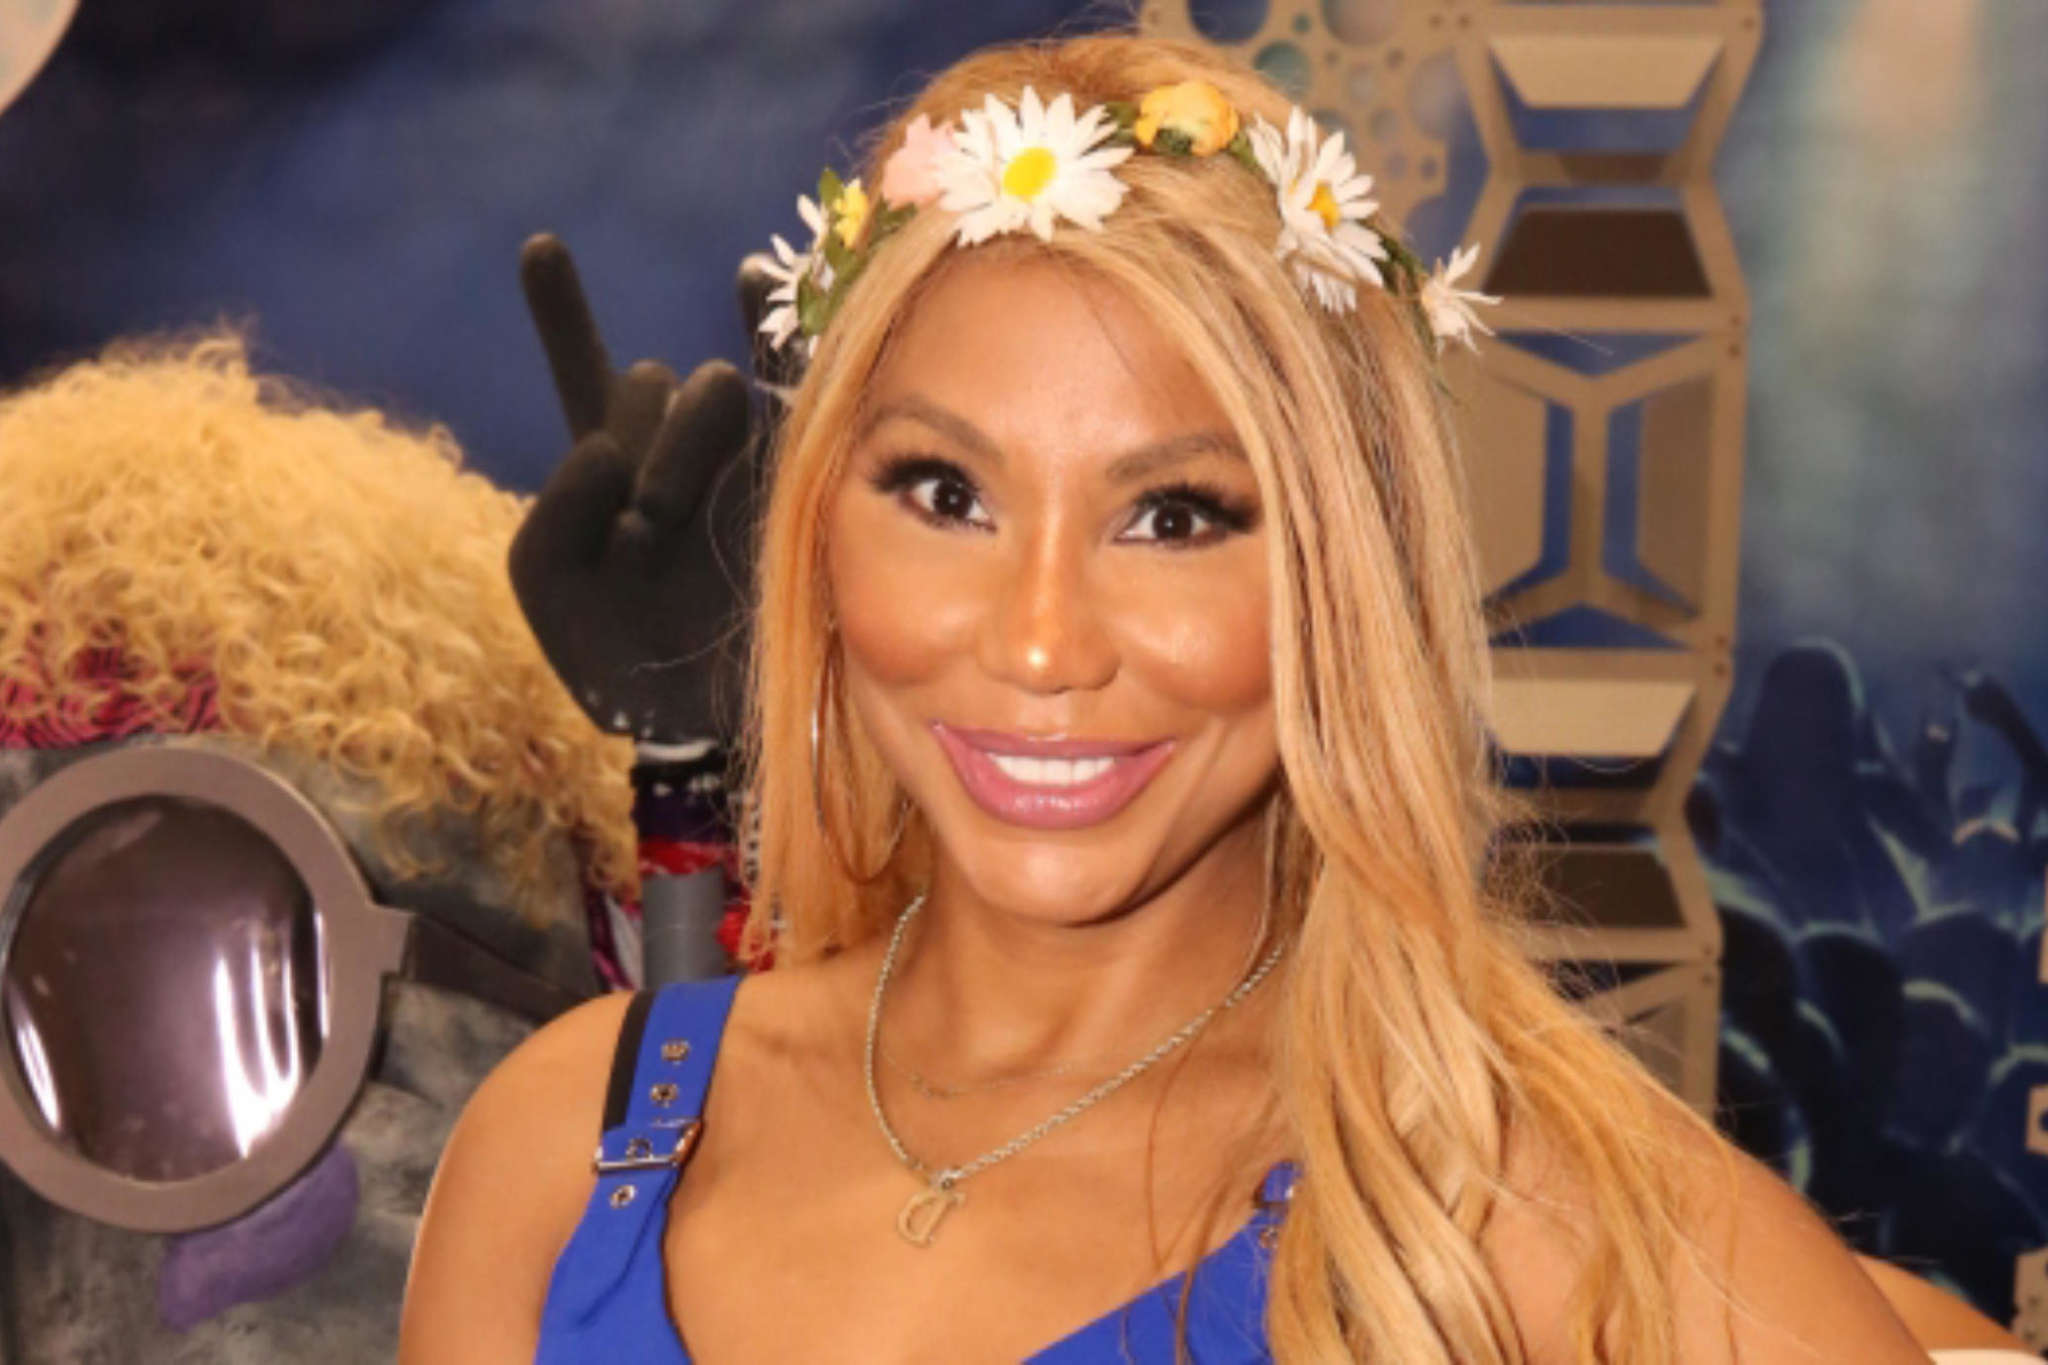 Tamar Braxton Shows Off Her Cleavage And Abs And Fans Appreciate The Jaw-Dropping Video